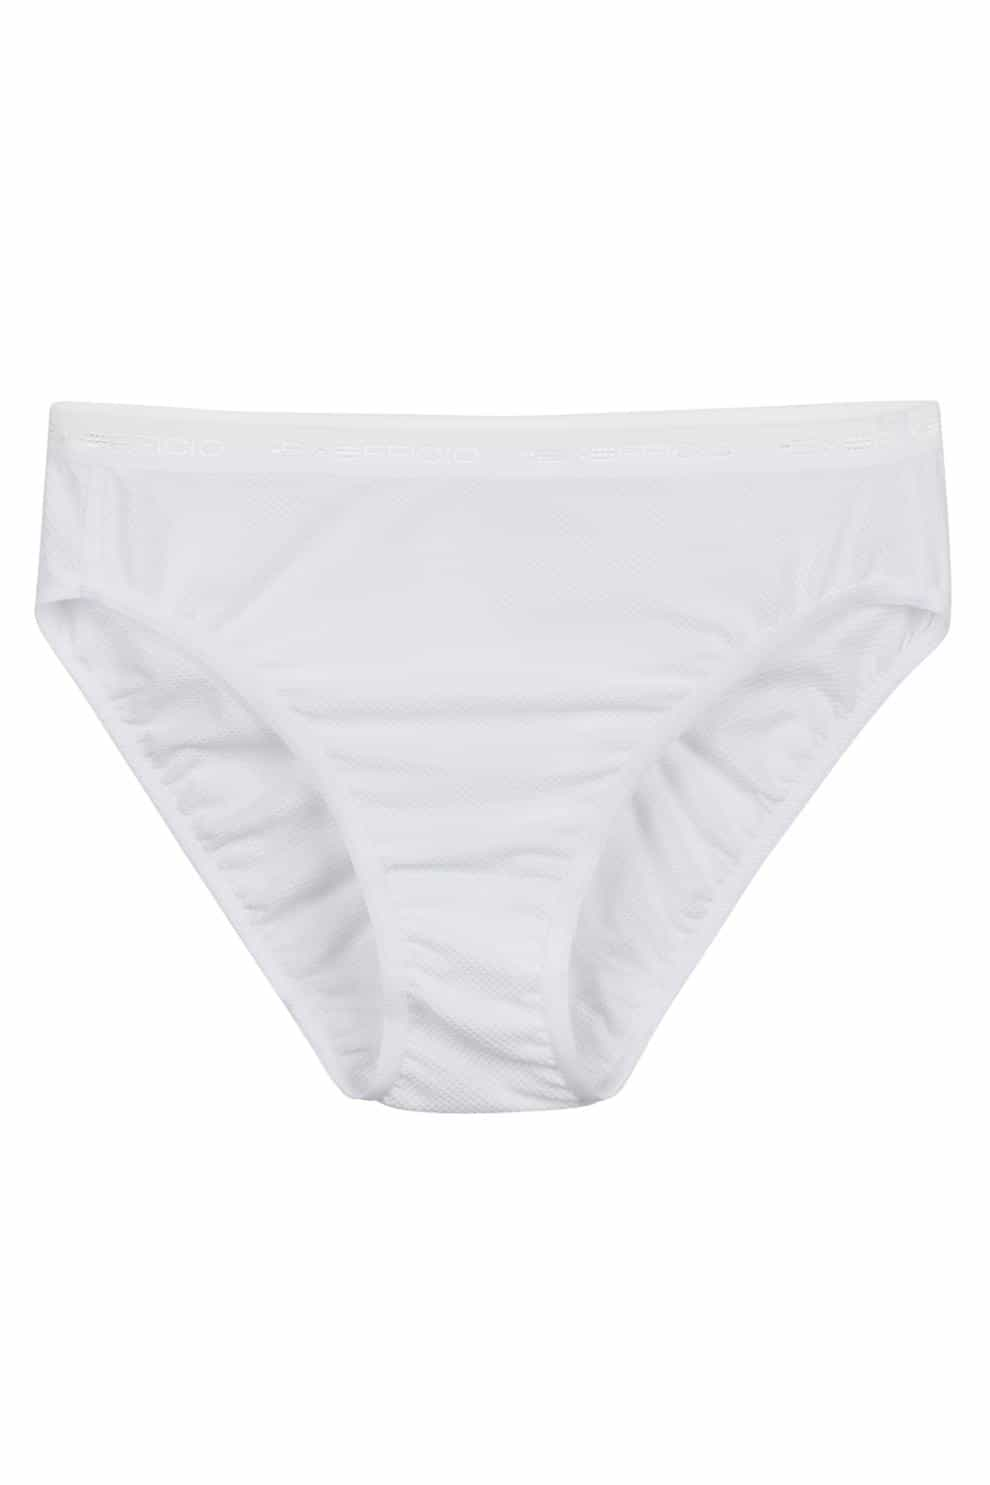 ExOfficio-Give-N-Go Bikini - Women's